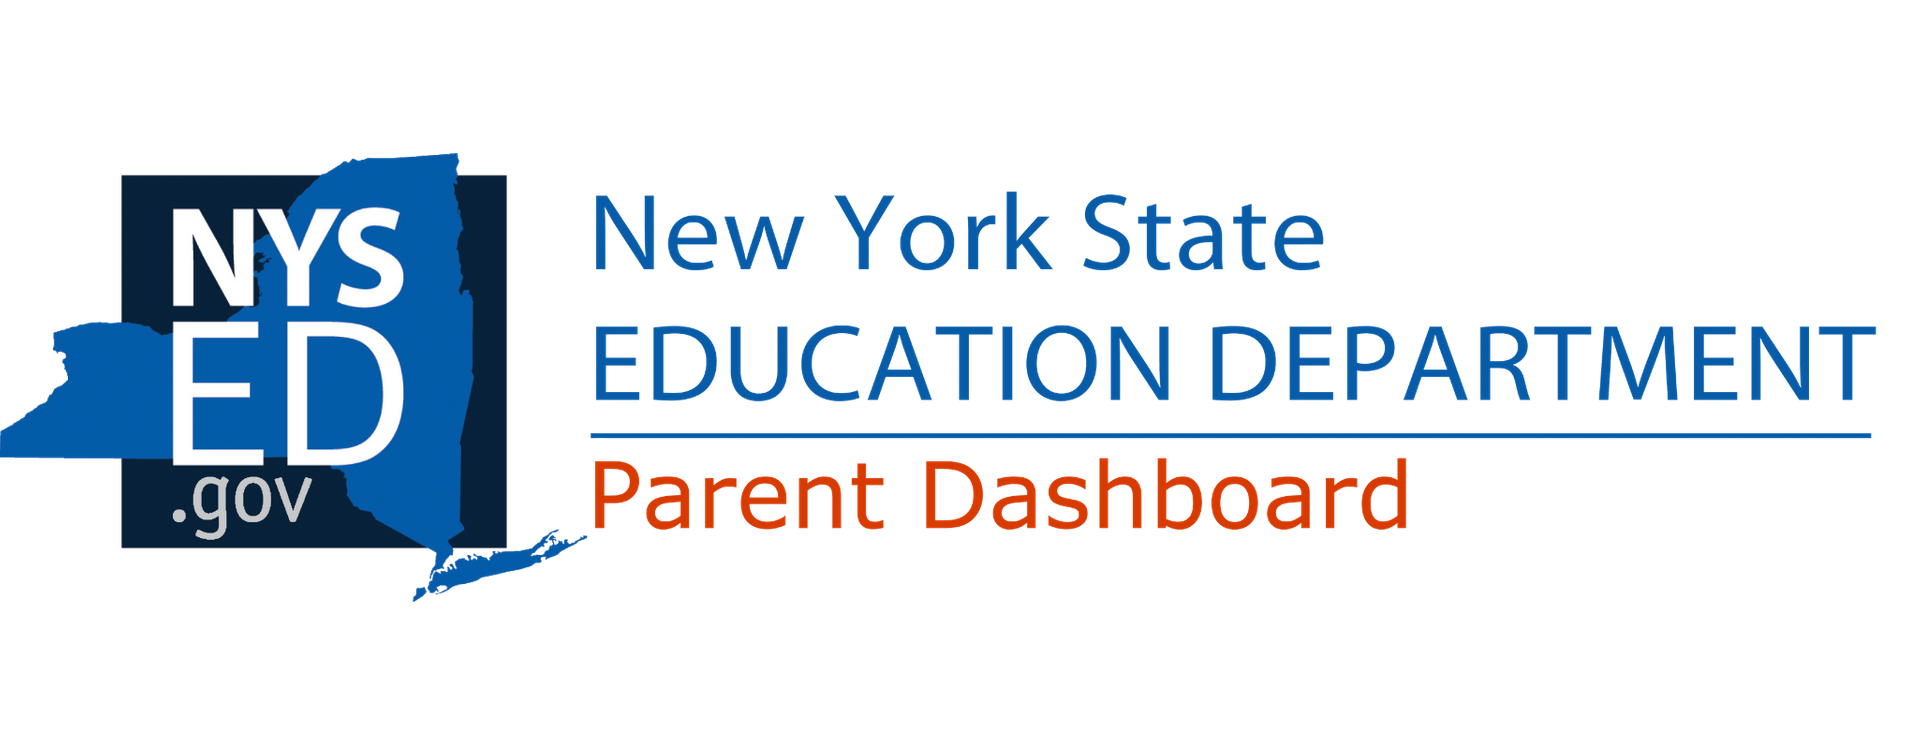 NYS ED Logo  with blue and orange color